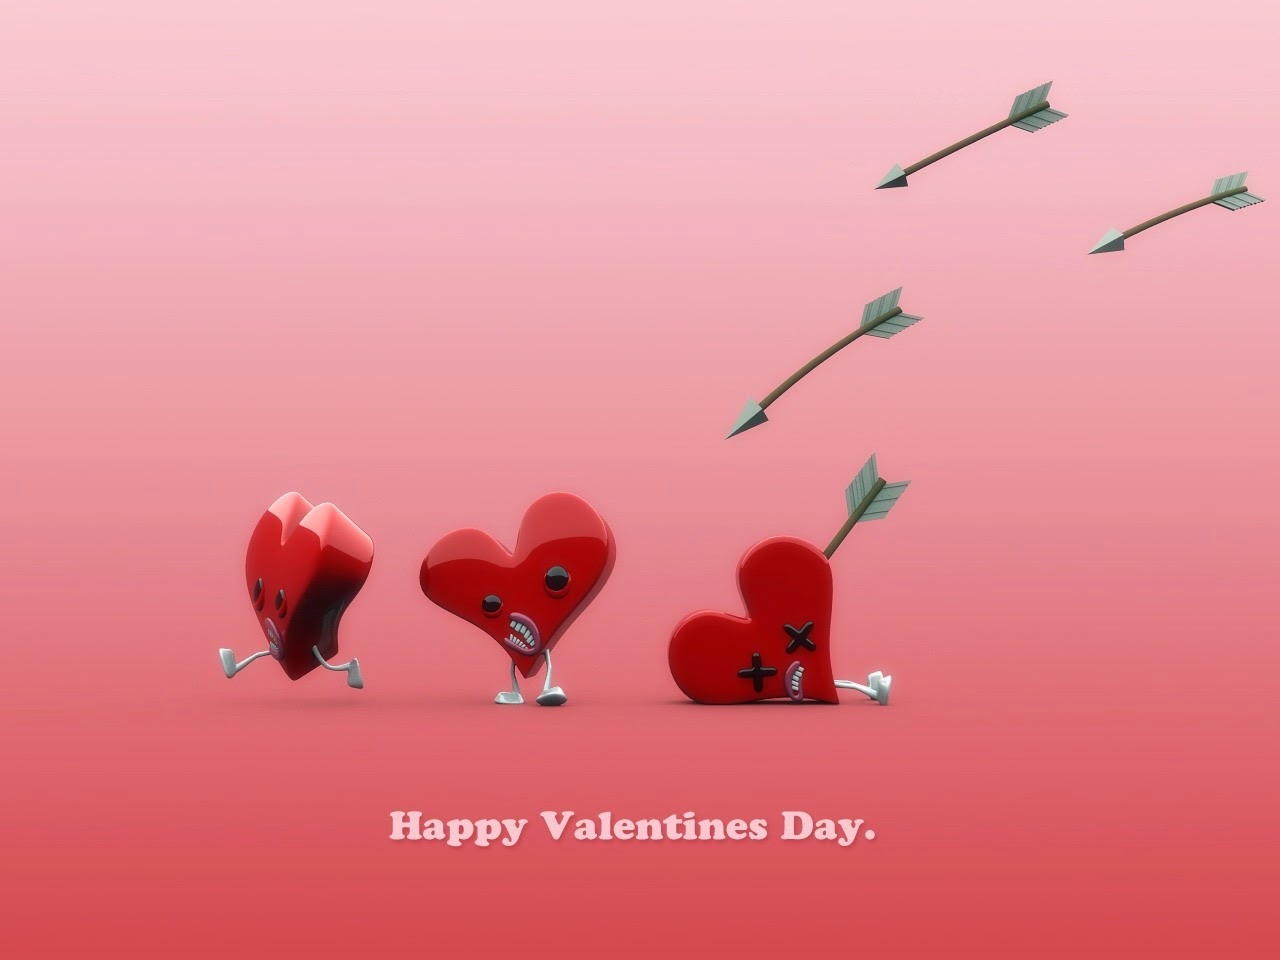 Valentine's Day Images, part 3